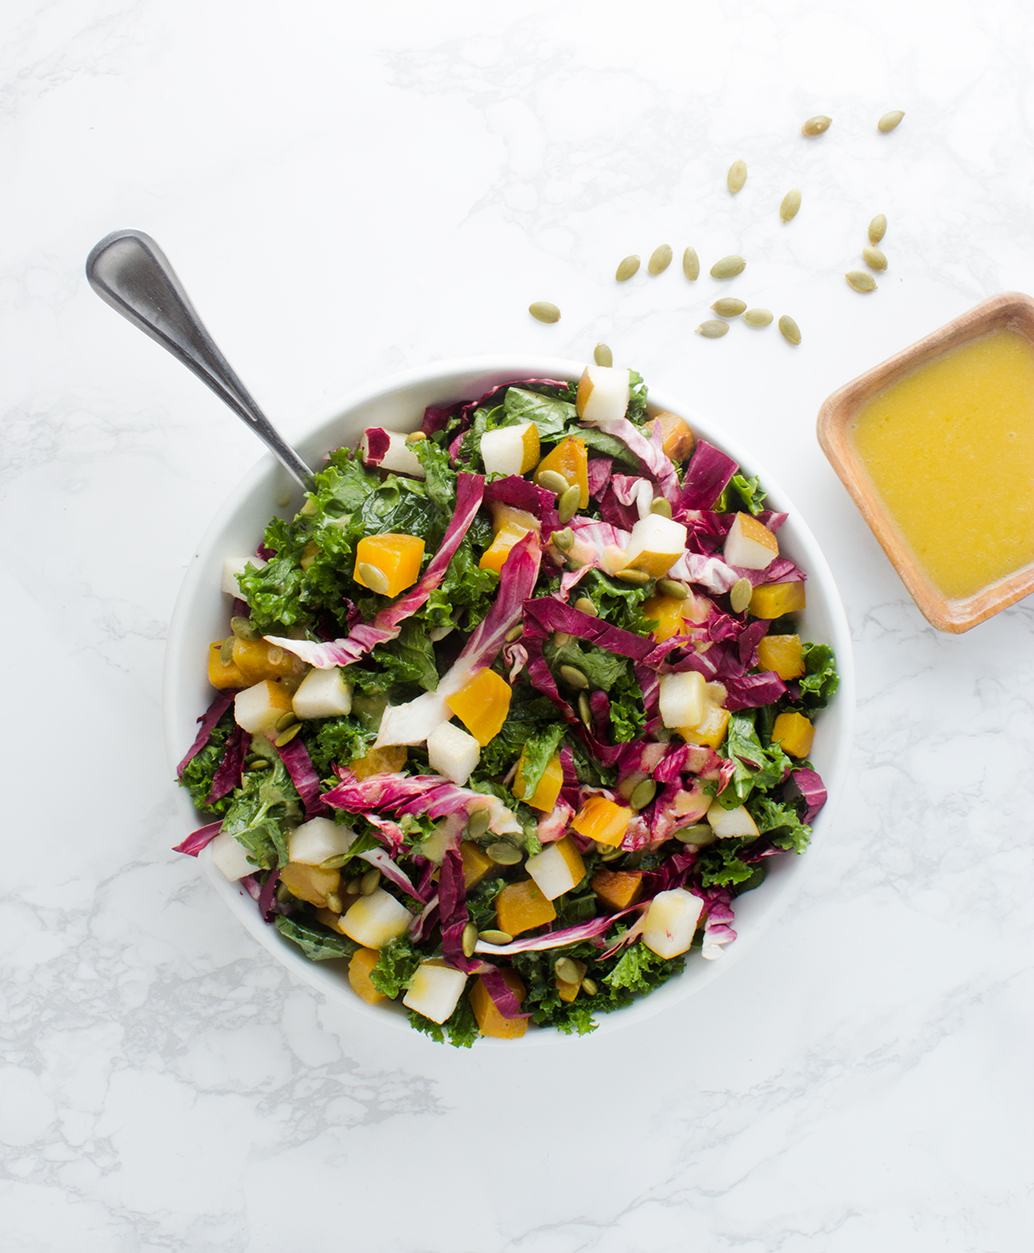 An inviting look: keep salads colorful with a variety of ingredients.